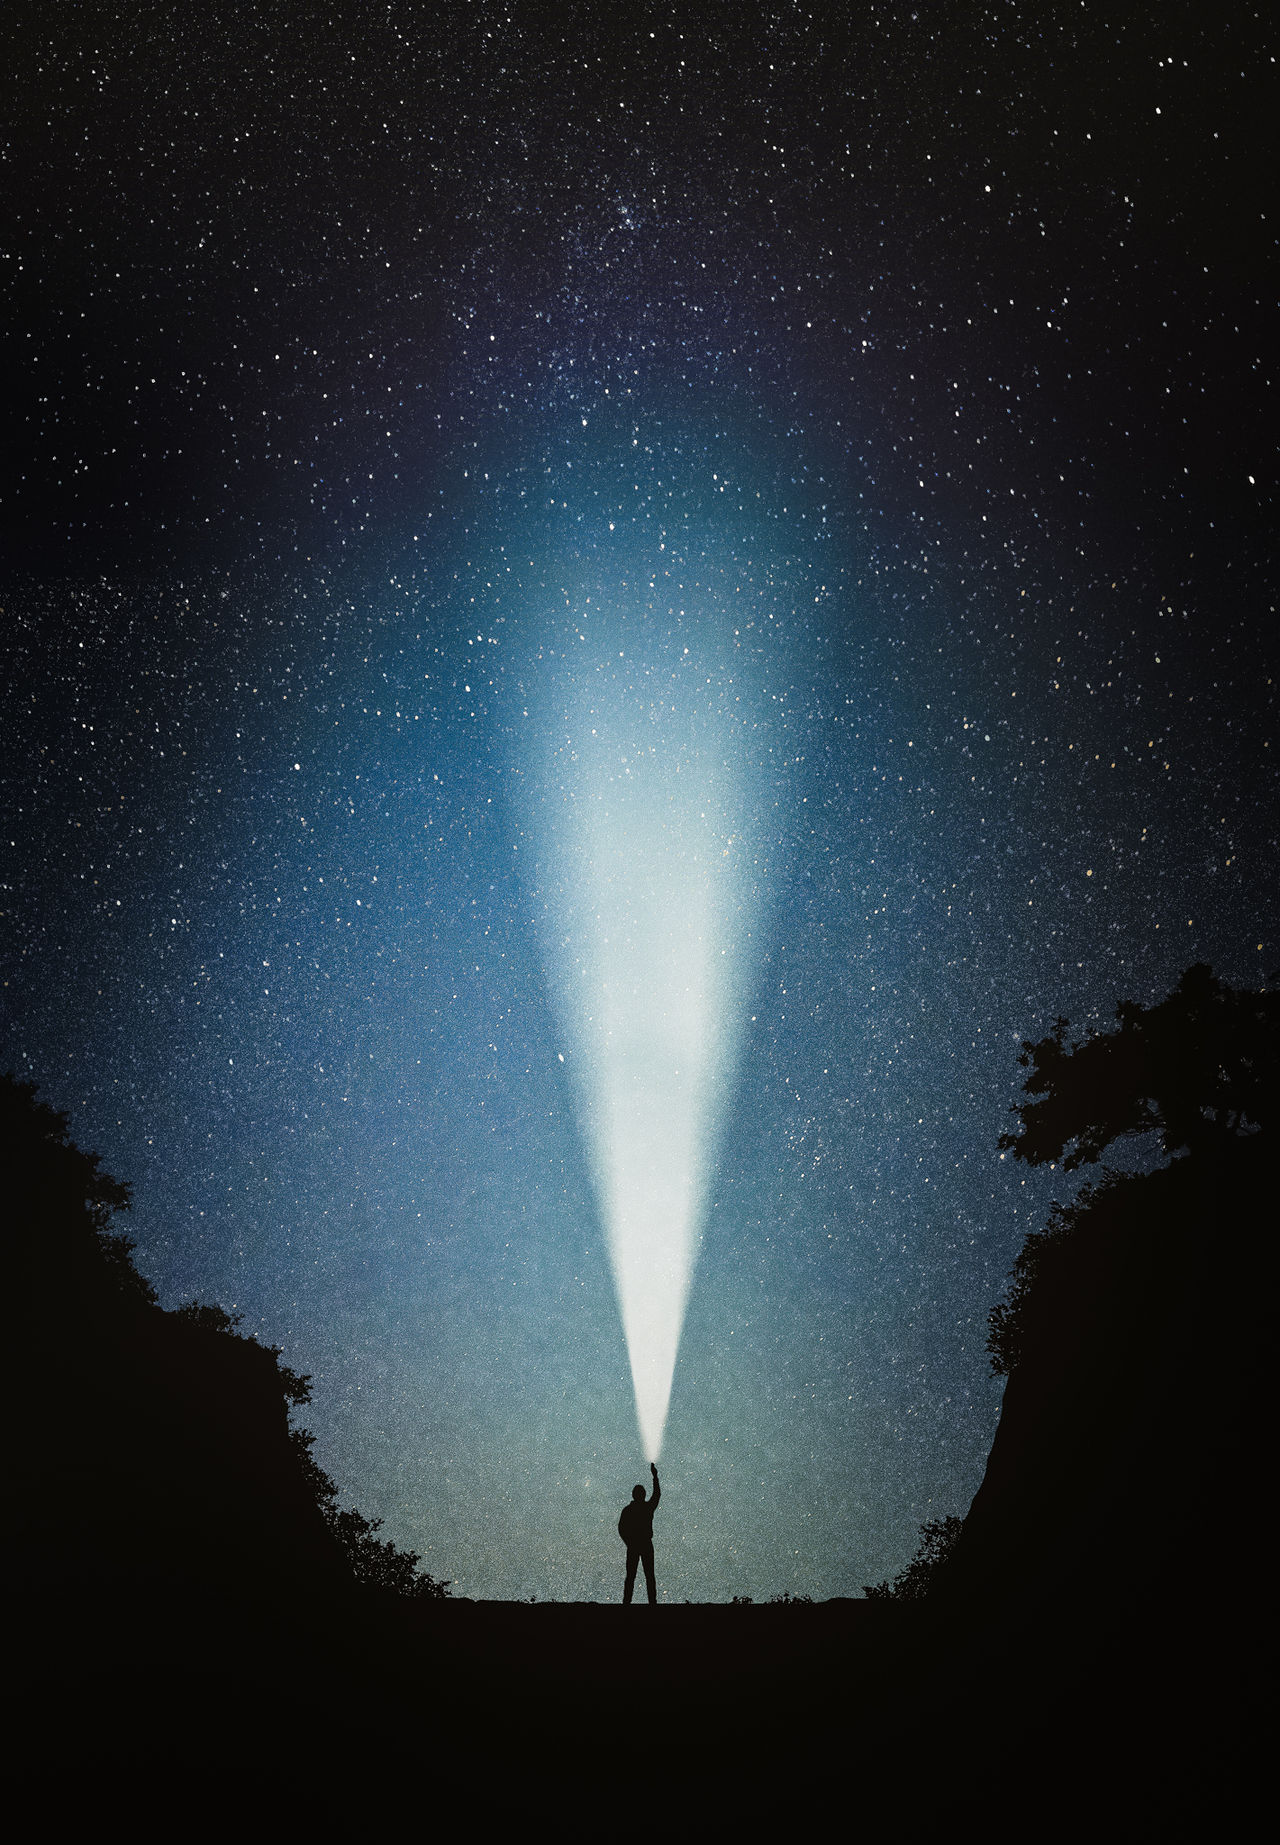 Reaching For The Stars Astronomy Beauty In Nature Contrast Dark Galaxy Illuminated Infinity Low Angle View Milky Way Milkyway Nature Nature Night Noir Outdoors Scenics Silhouette Sky Space Star - Space Star Field Stars Tranquil Scene Tranquility Tree